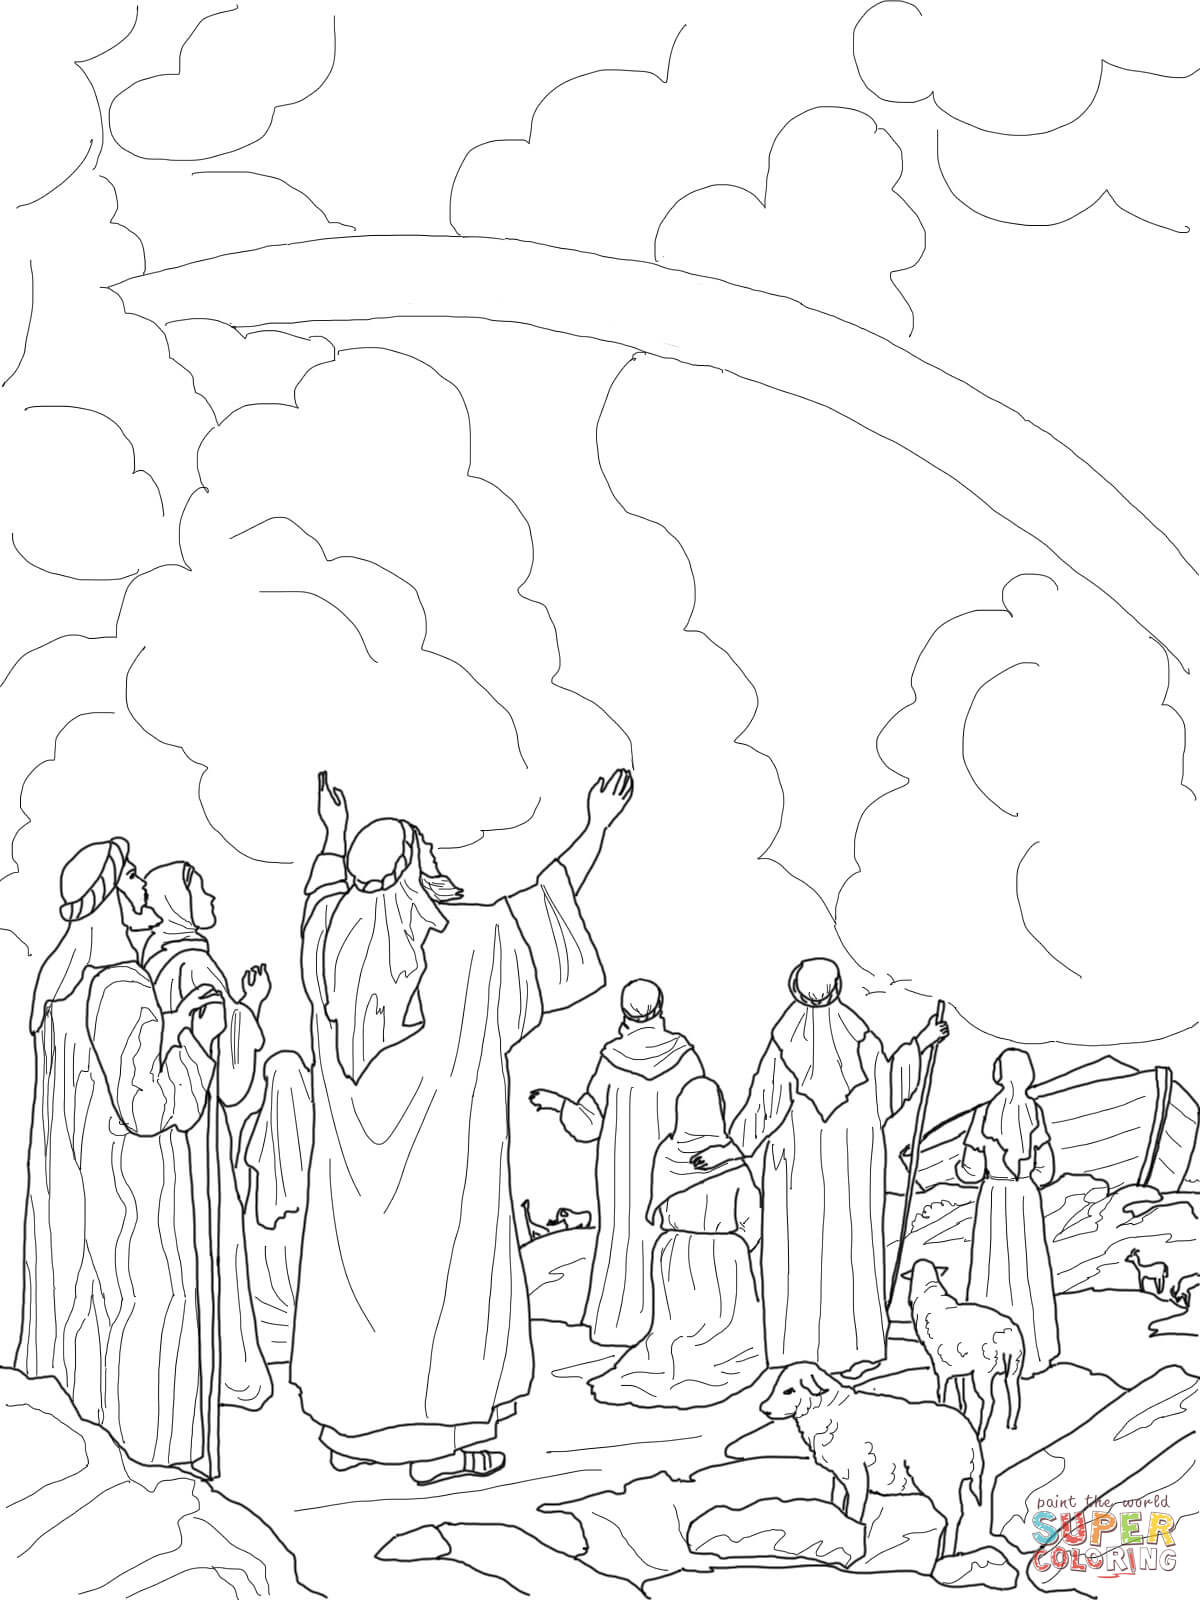 Rainbow Covenant Coloring Page